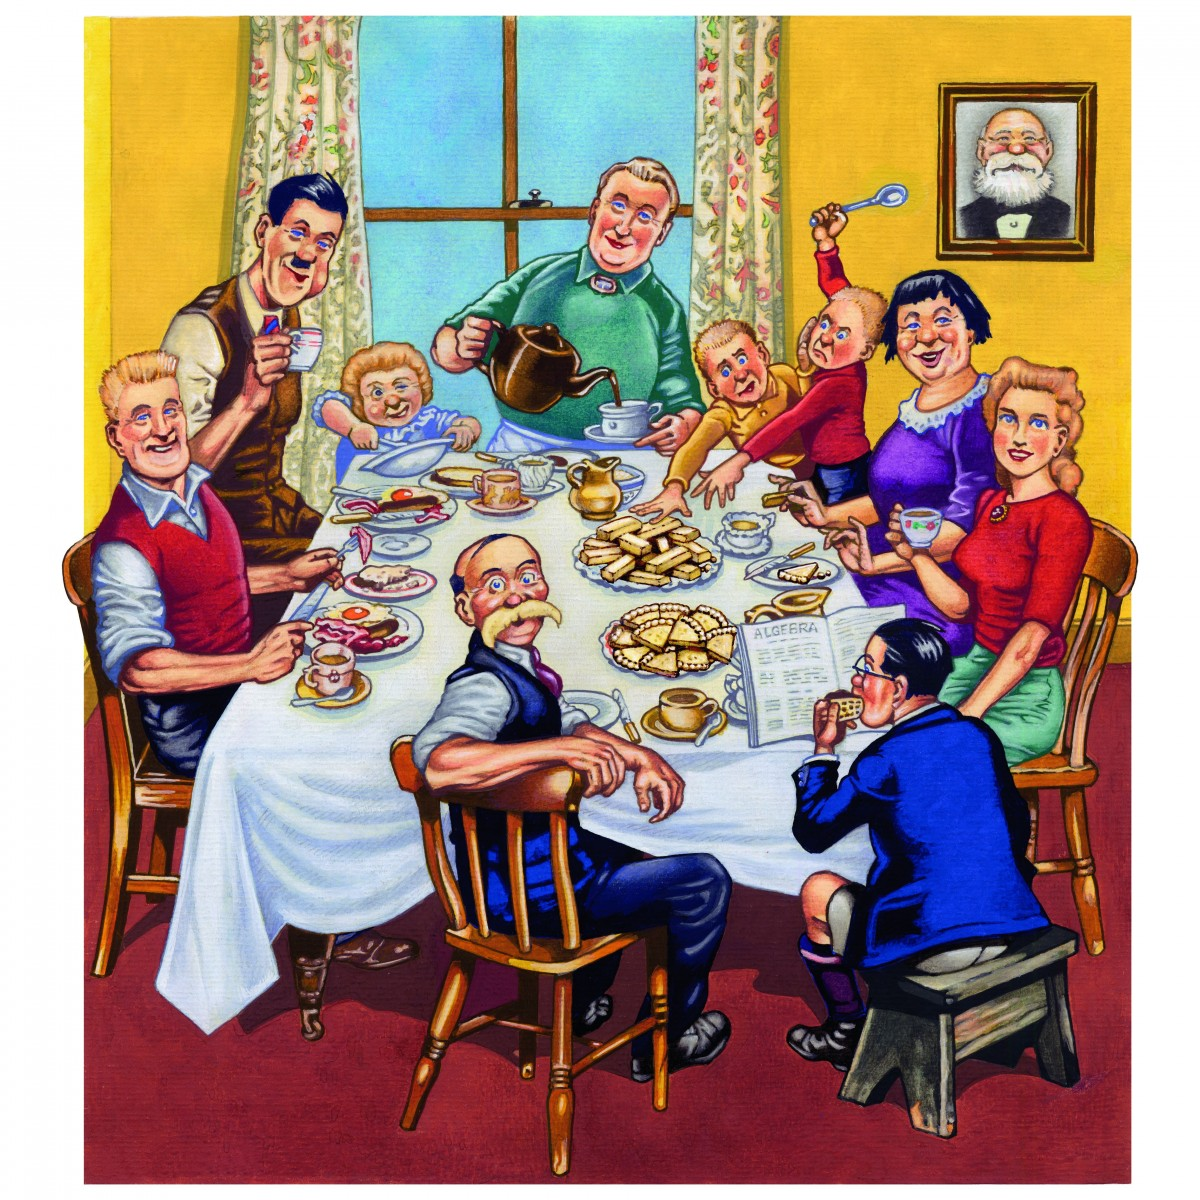 The Broons dinner table